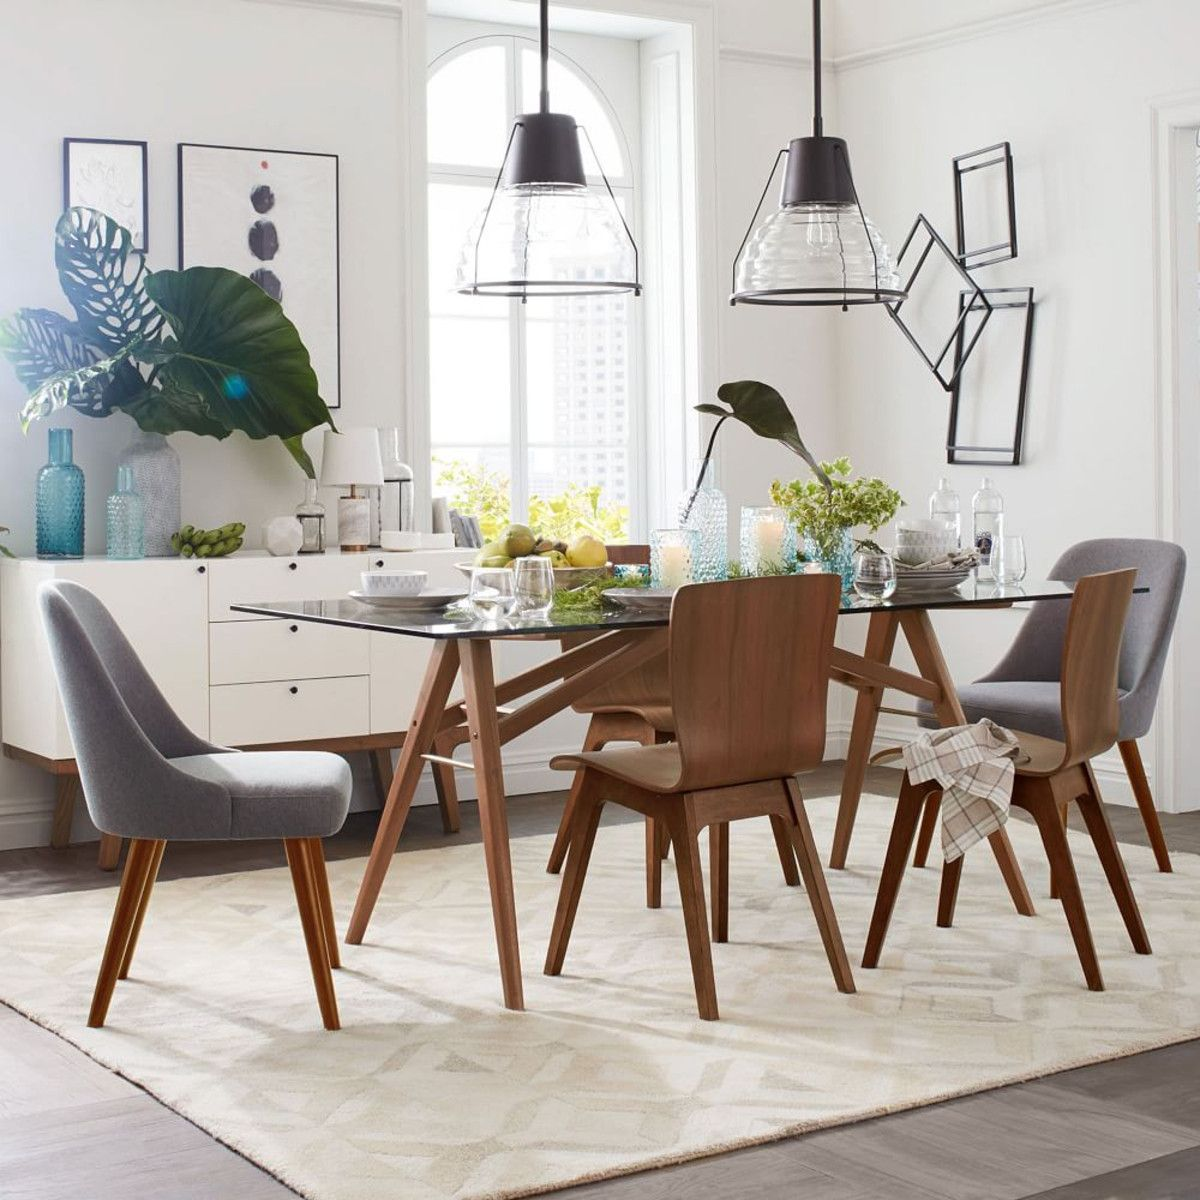 Explore Modern Dining Table, Dining Room Tables, And More!